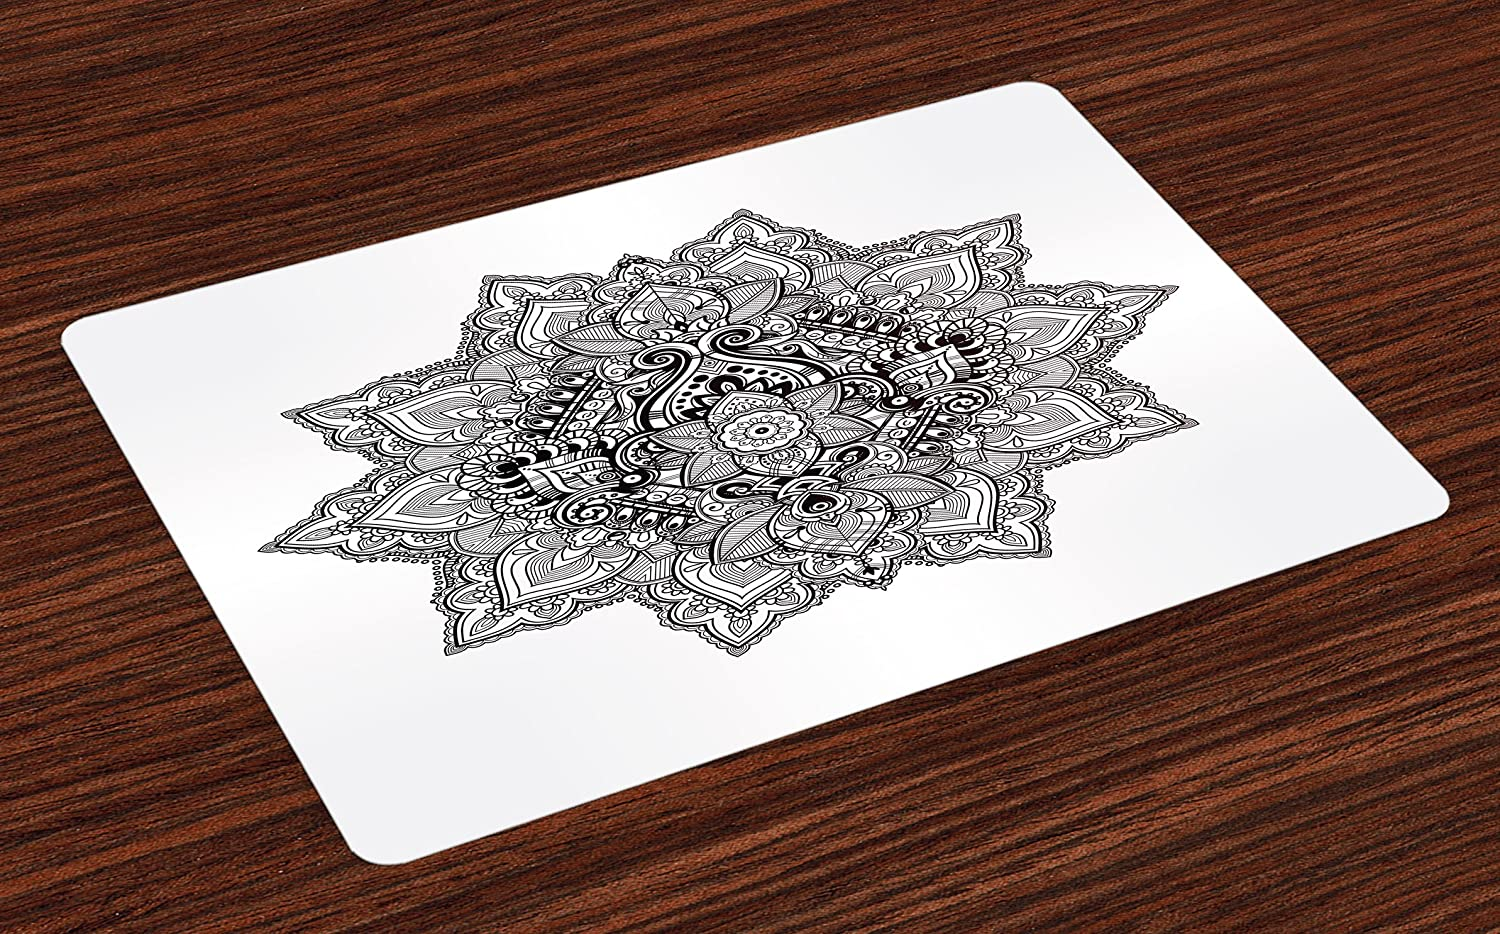 Ambesonne Lotus Place Mats Set of 4, Mandala with Aztec Tribal Textured Ornamental Cosmos Floral Pattern, Washable Fabric Placemats for Dining Room Kitchen Table Decor, Grey Black